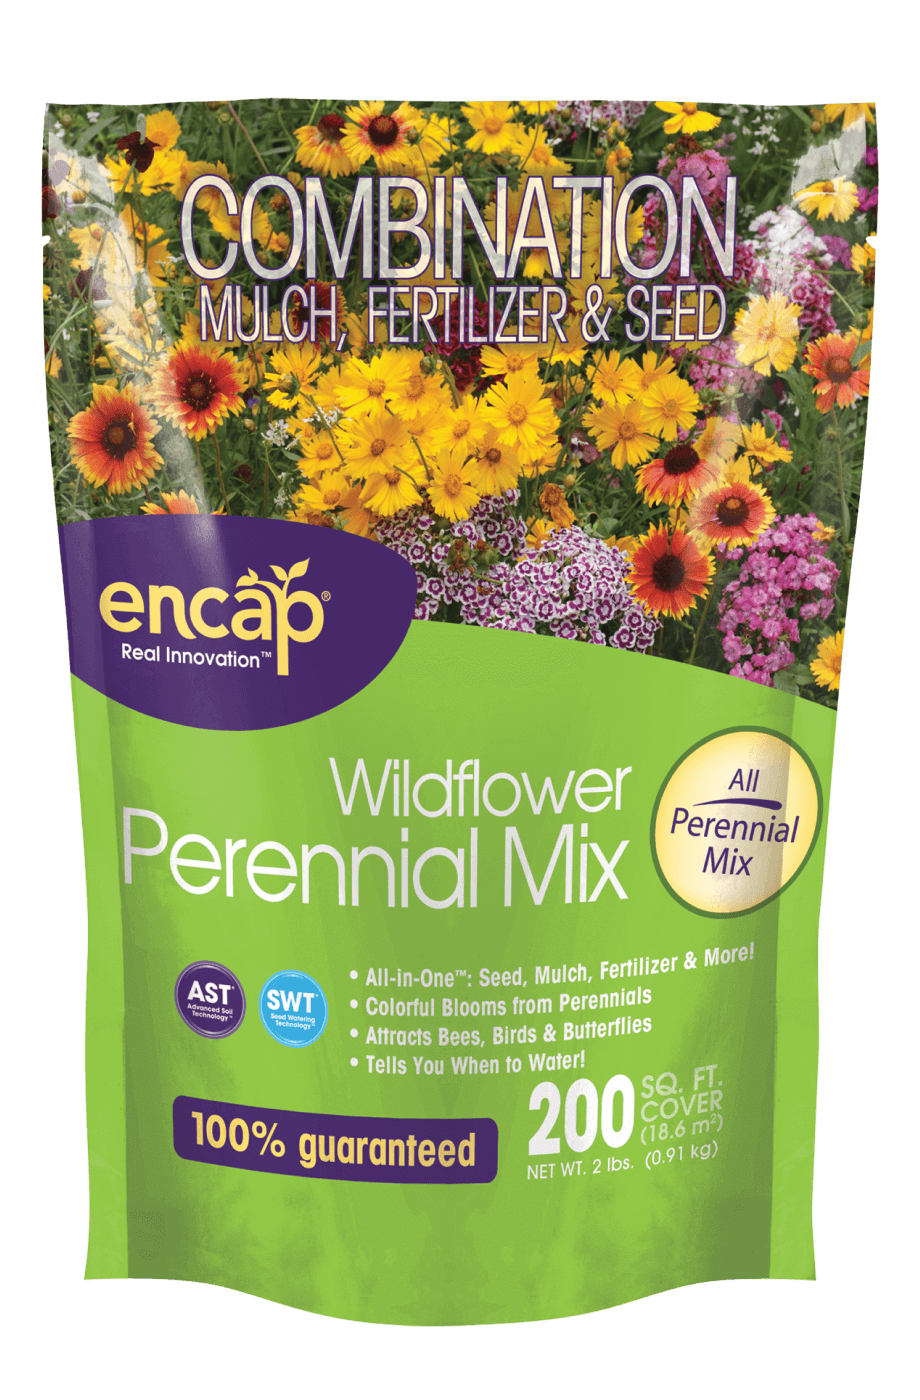 Wildflower Perennial Mix